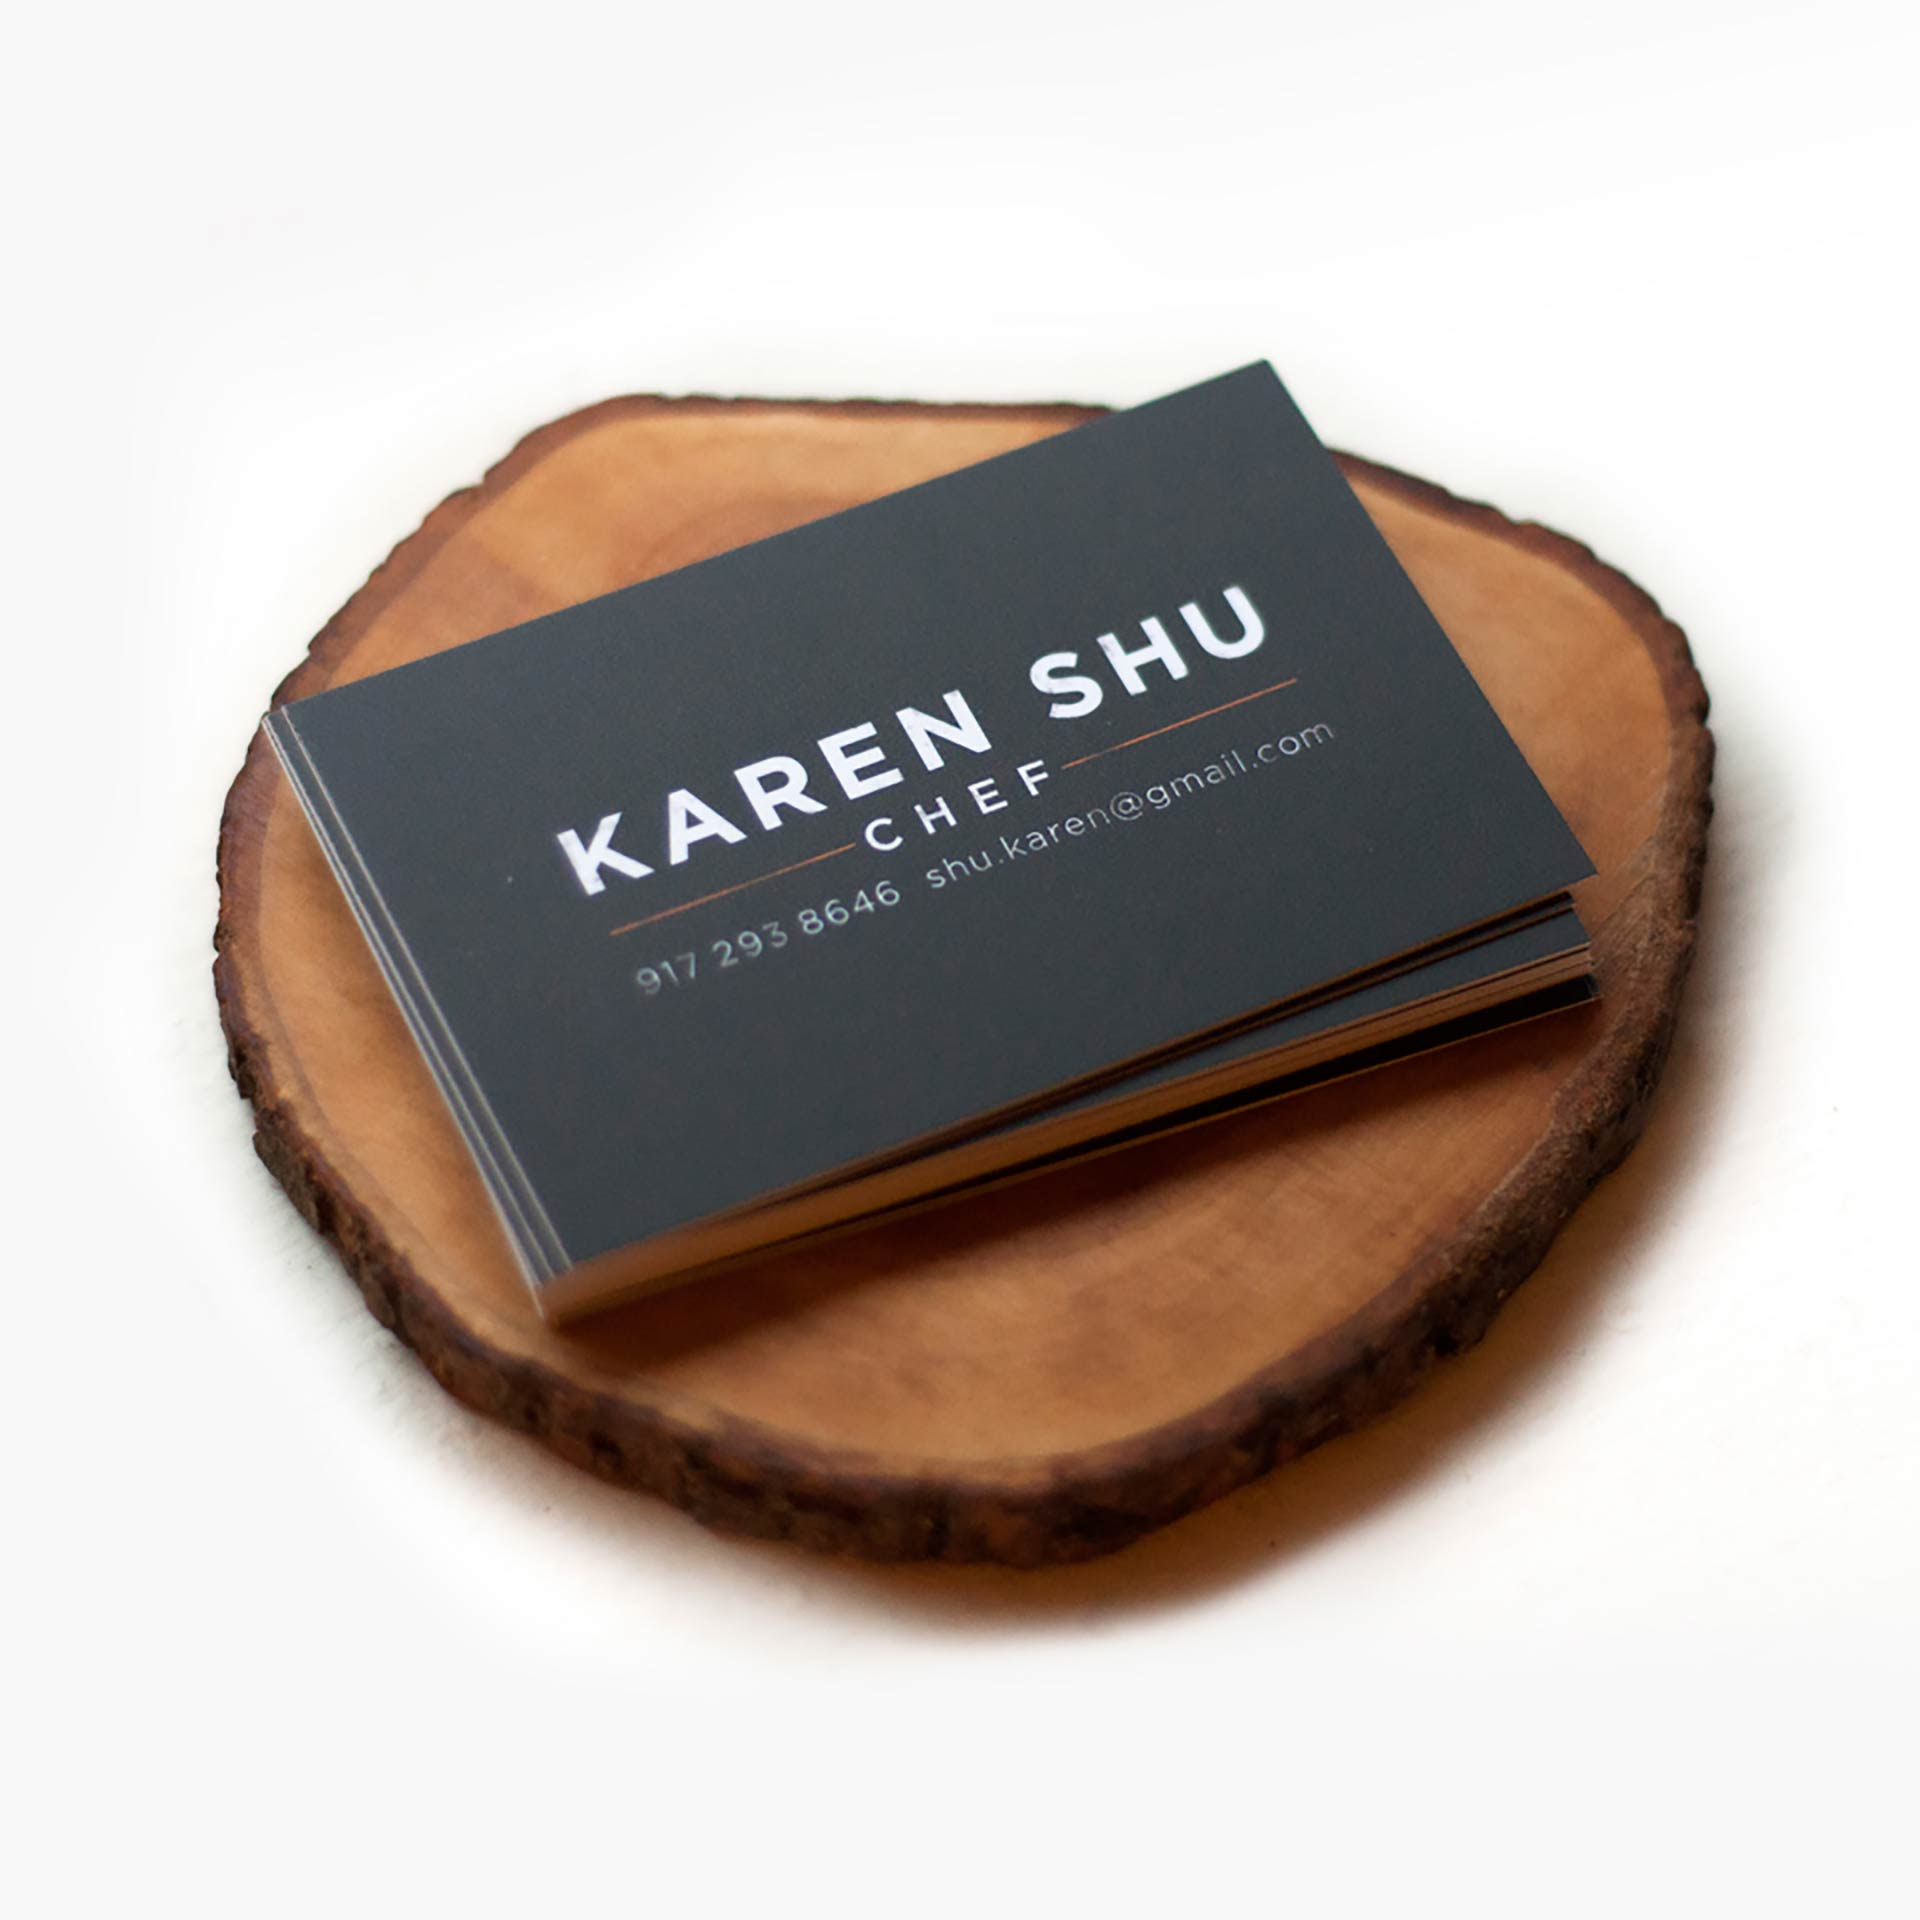 Business card design for Chef Karen Shu of NYC